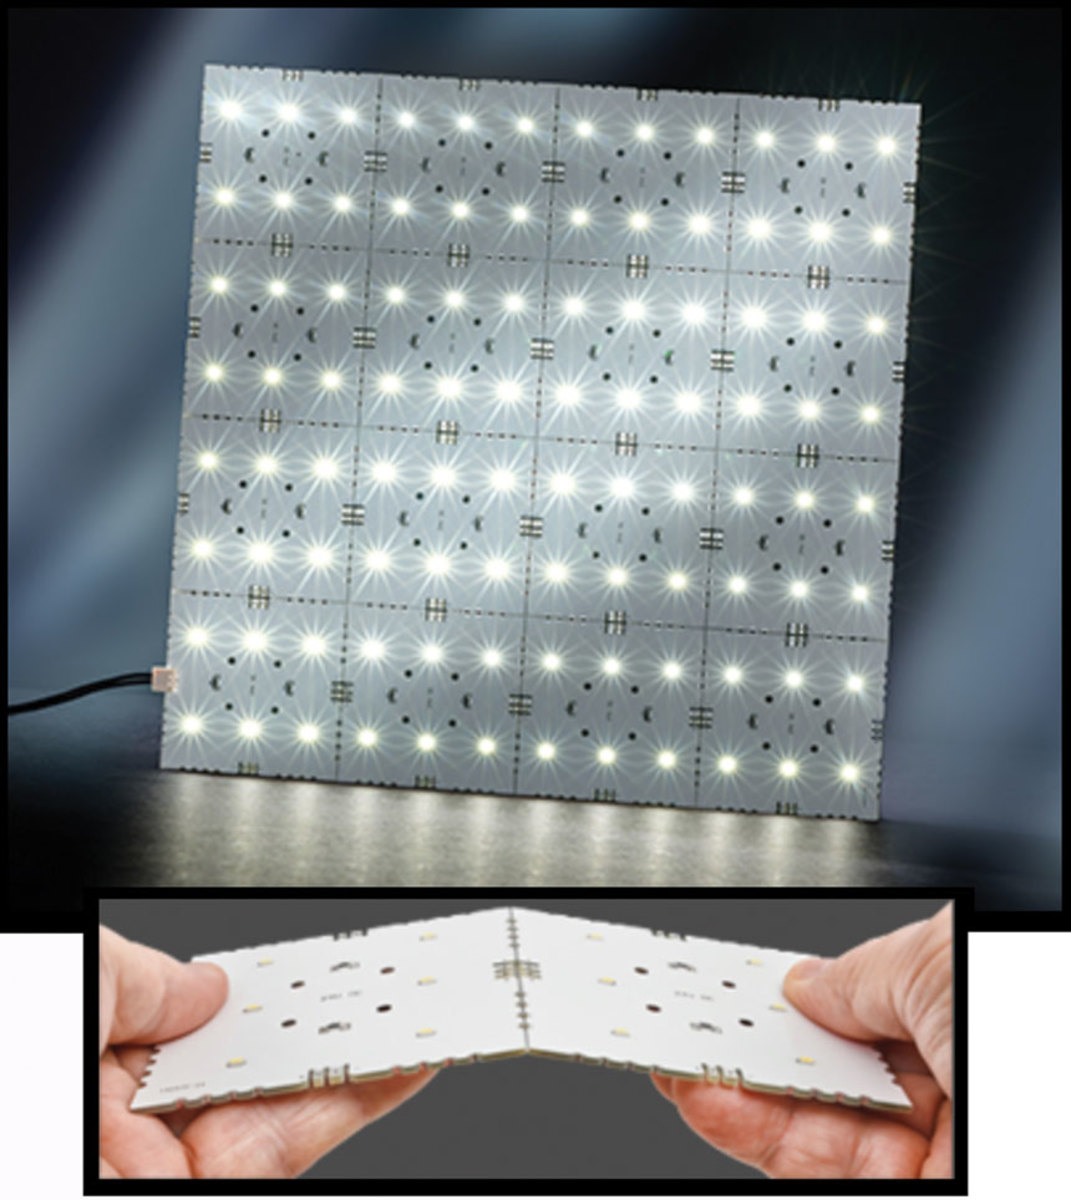 Snap panel lighting, available from Tresco Lighting